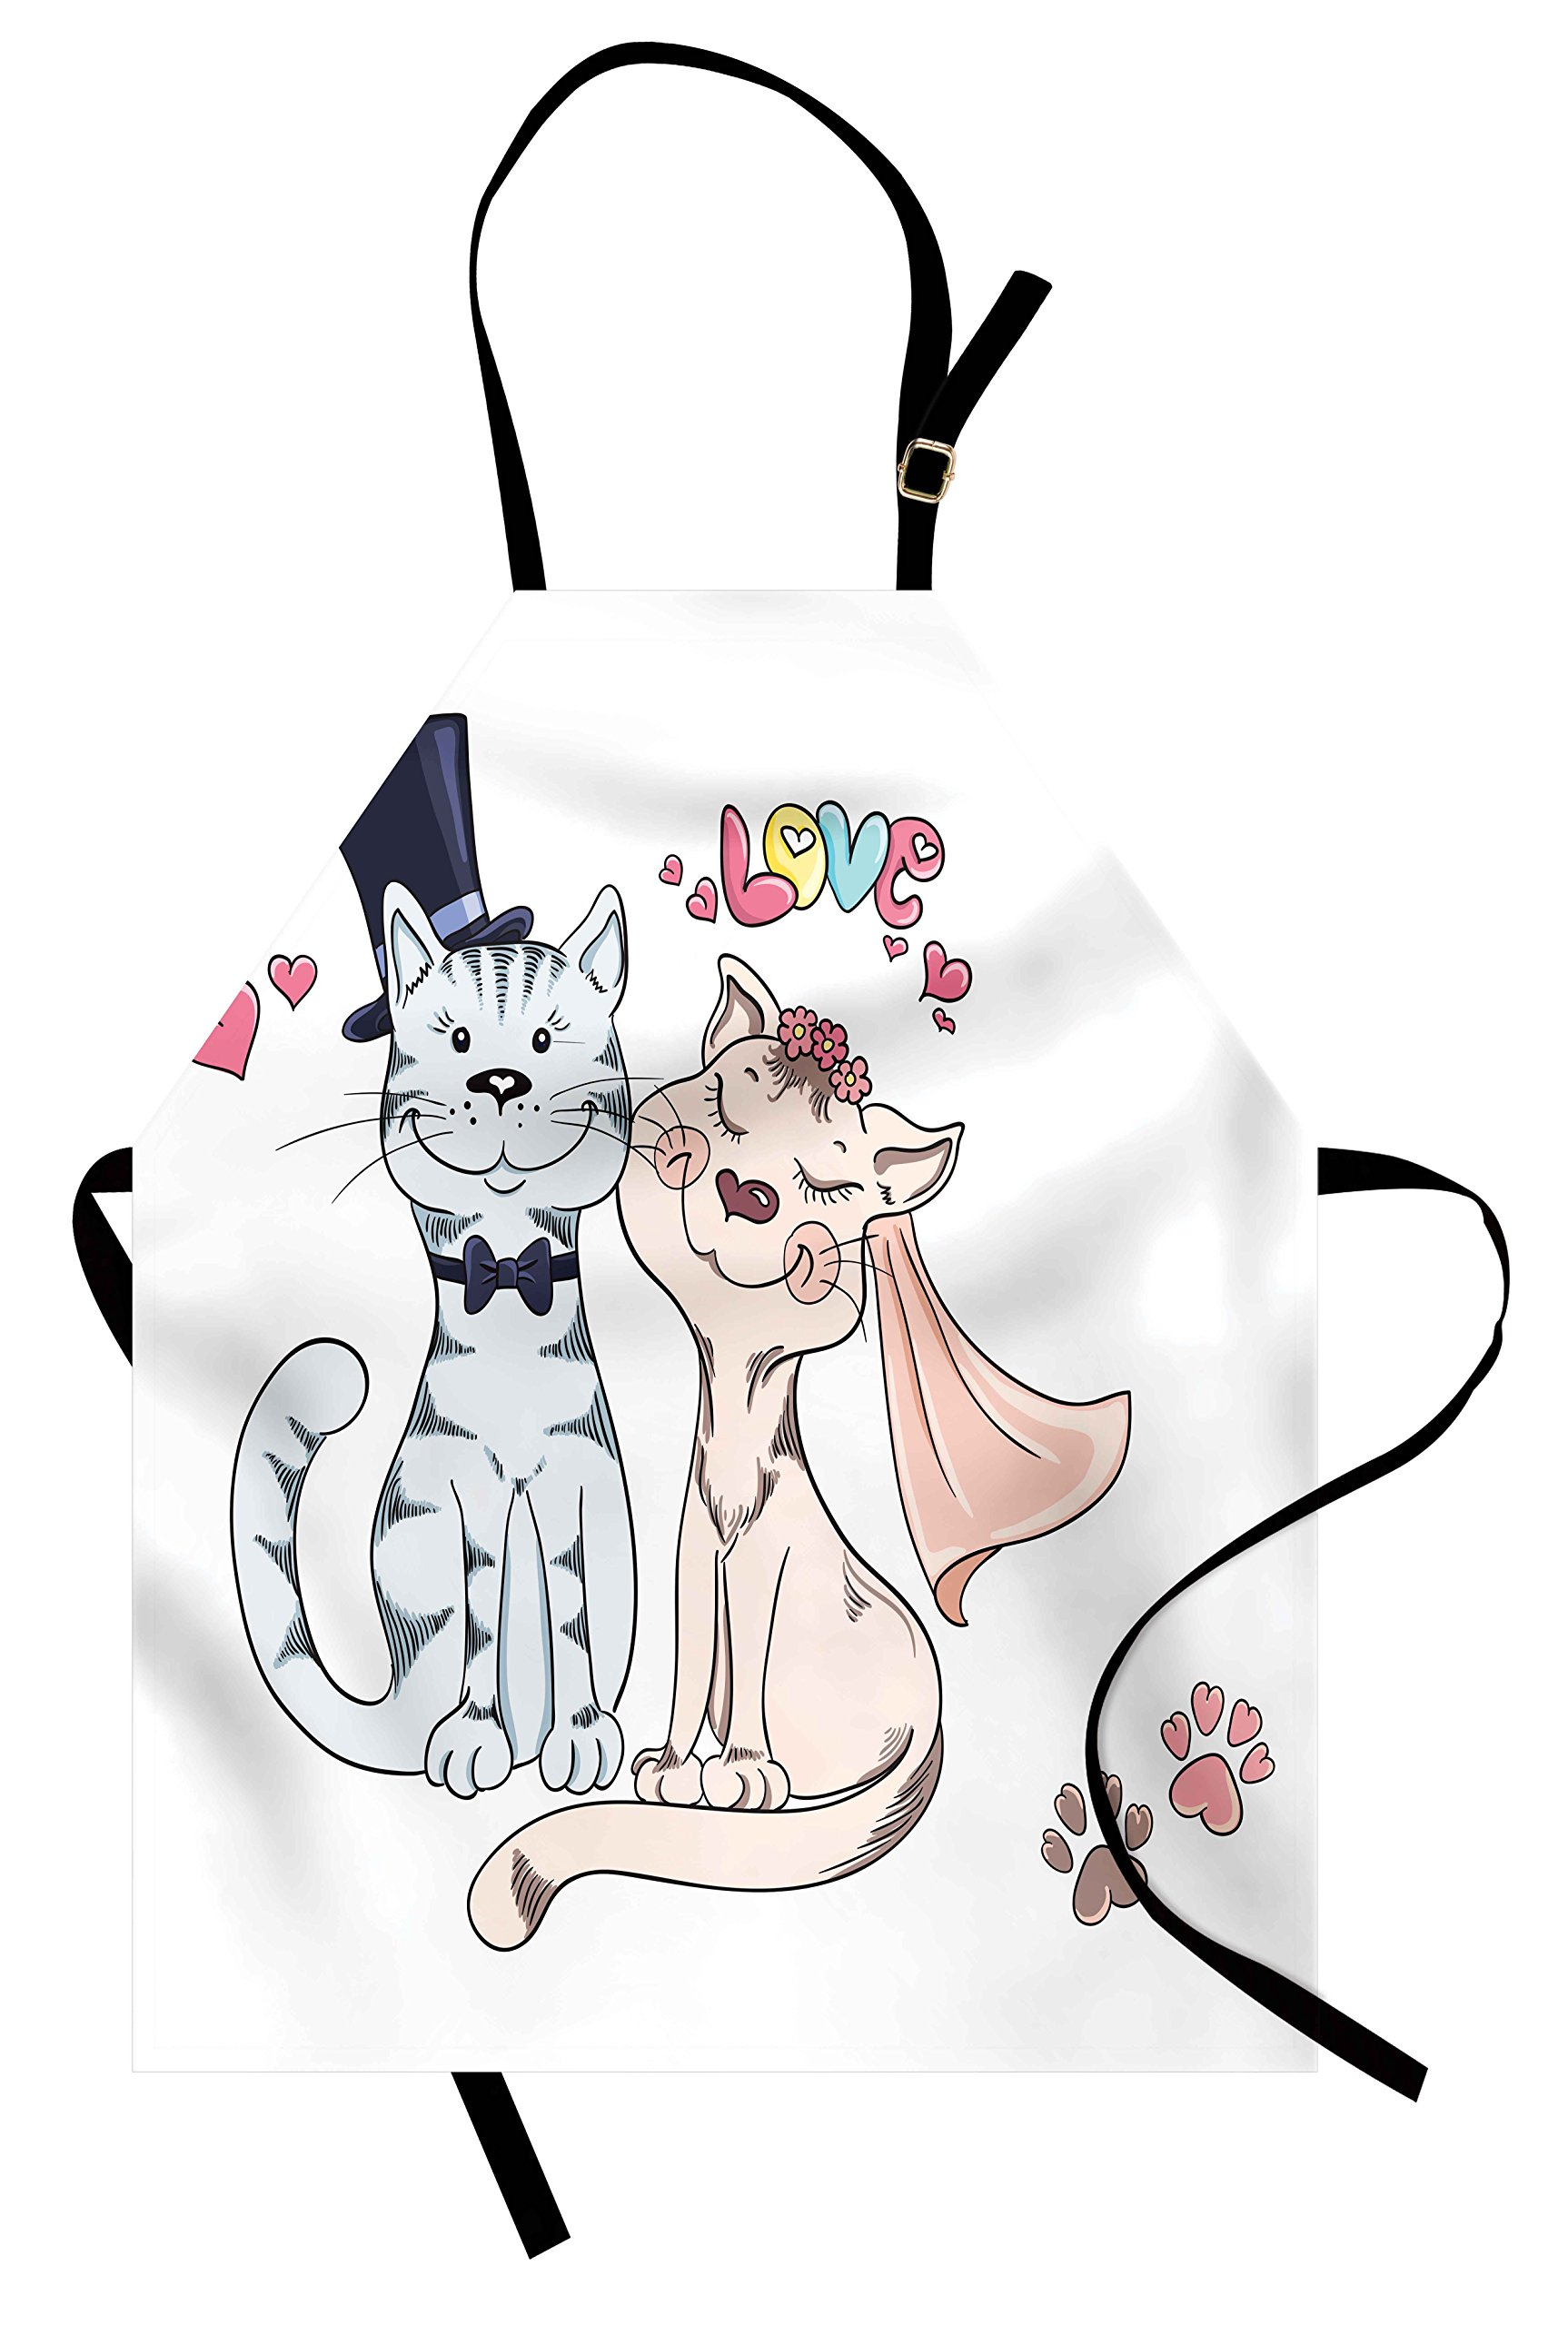 Lunarable Animals Apron, Groom Bride Cat's Wedding Feline Animals Married Romance Happy Ceremony, Unisex Kitchen Bib Apron with Adjustable Neck for Cooking Baking Gardening, Peach Baby Blue White by Lunarable (Image #1)